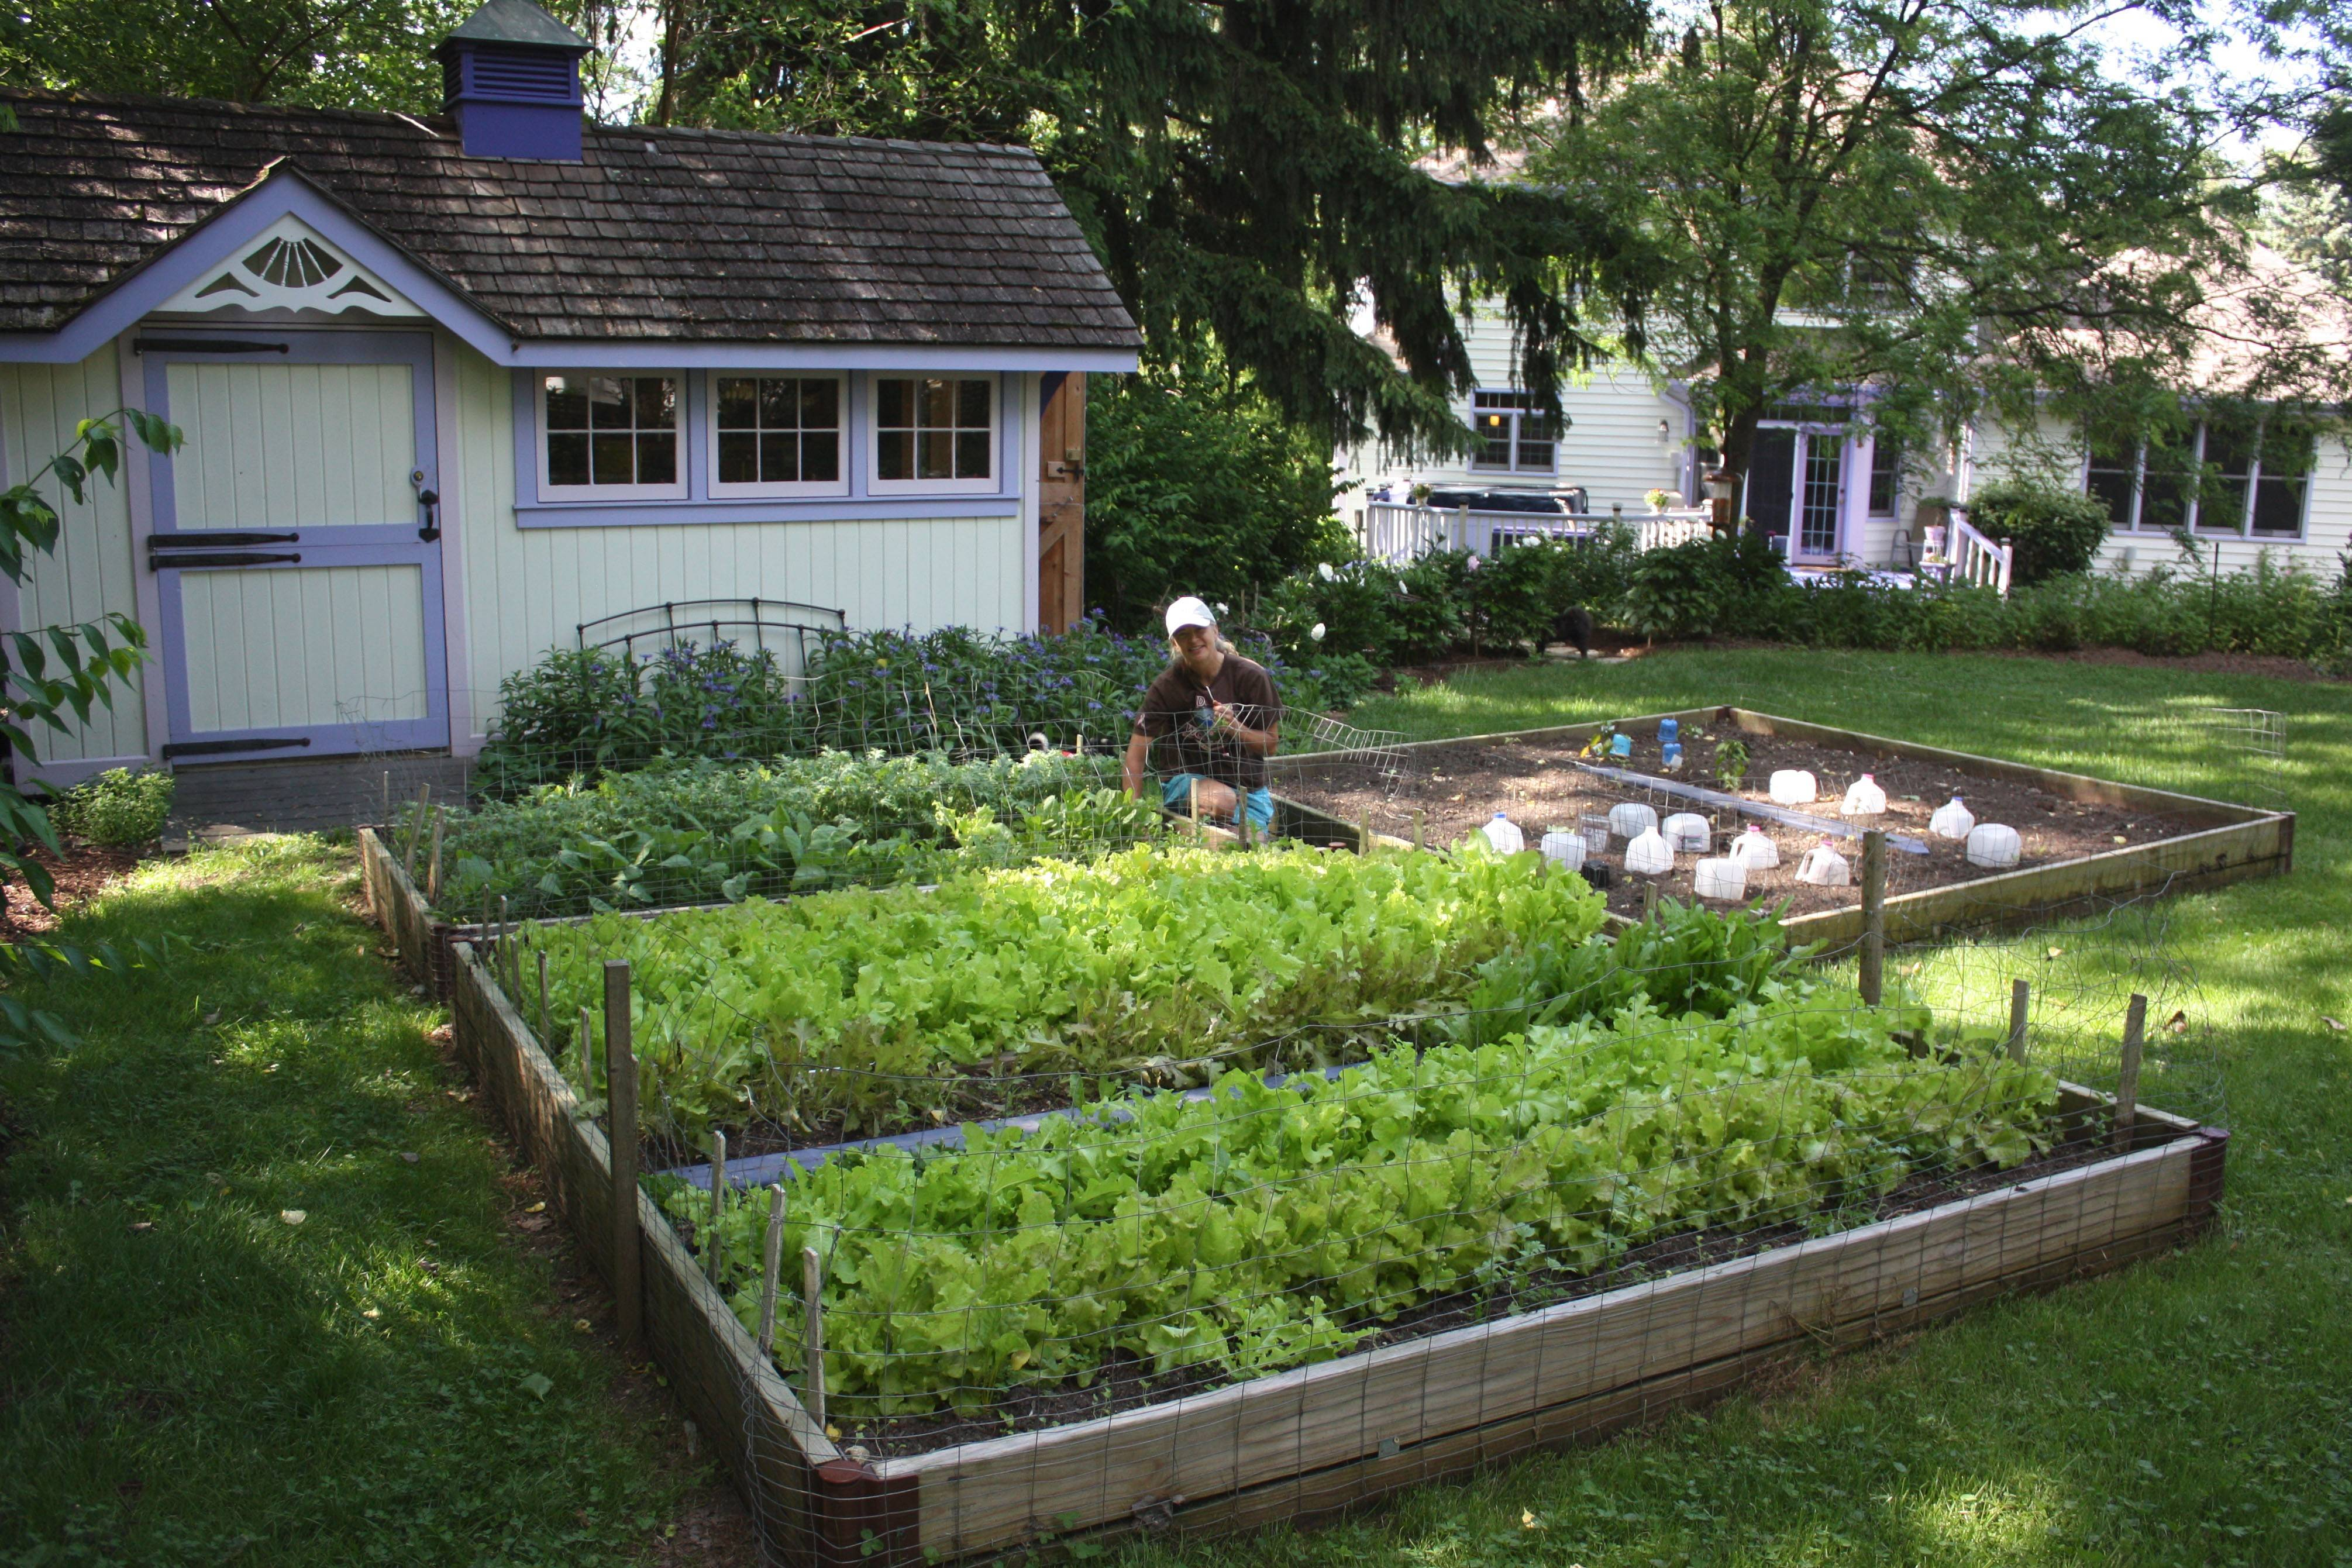 The raised garden beds Claire Goldenberg tends keeps the family supplied with a variety of lettuces for organic mixed-greens salads. The charming garden shed keeps all necessary implements nearby. Tender green pepper plants warm under the protective plastic jugs.